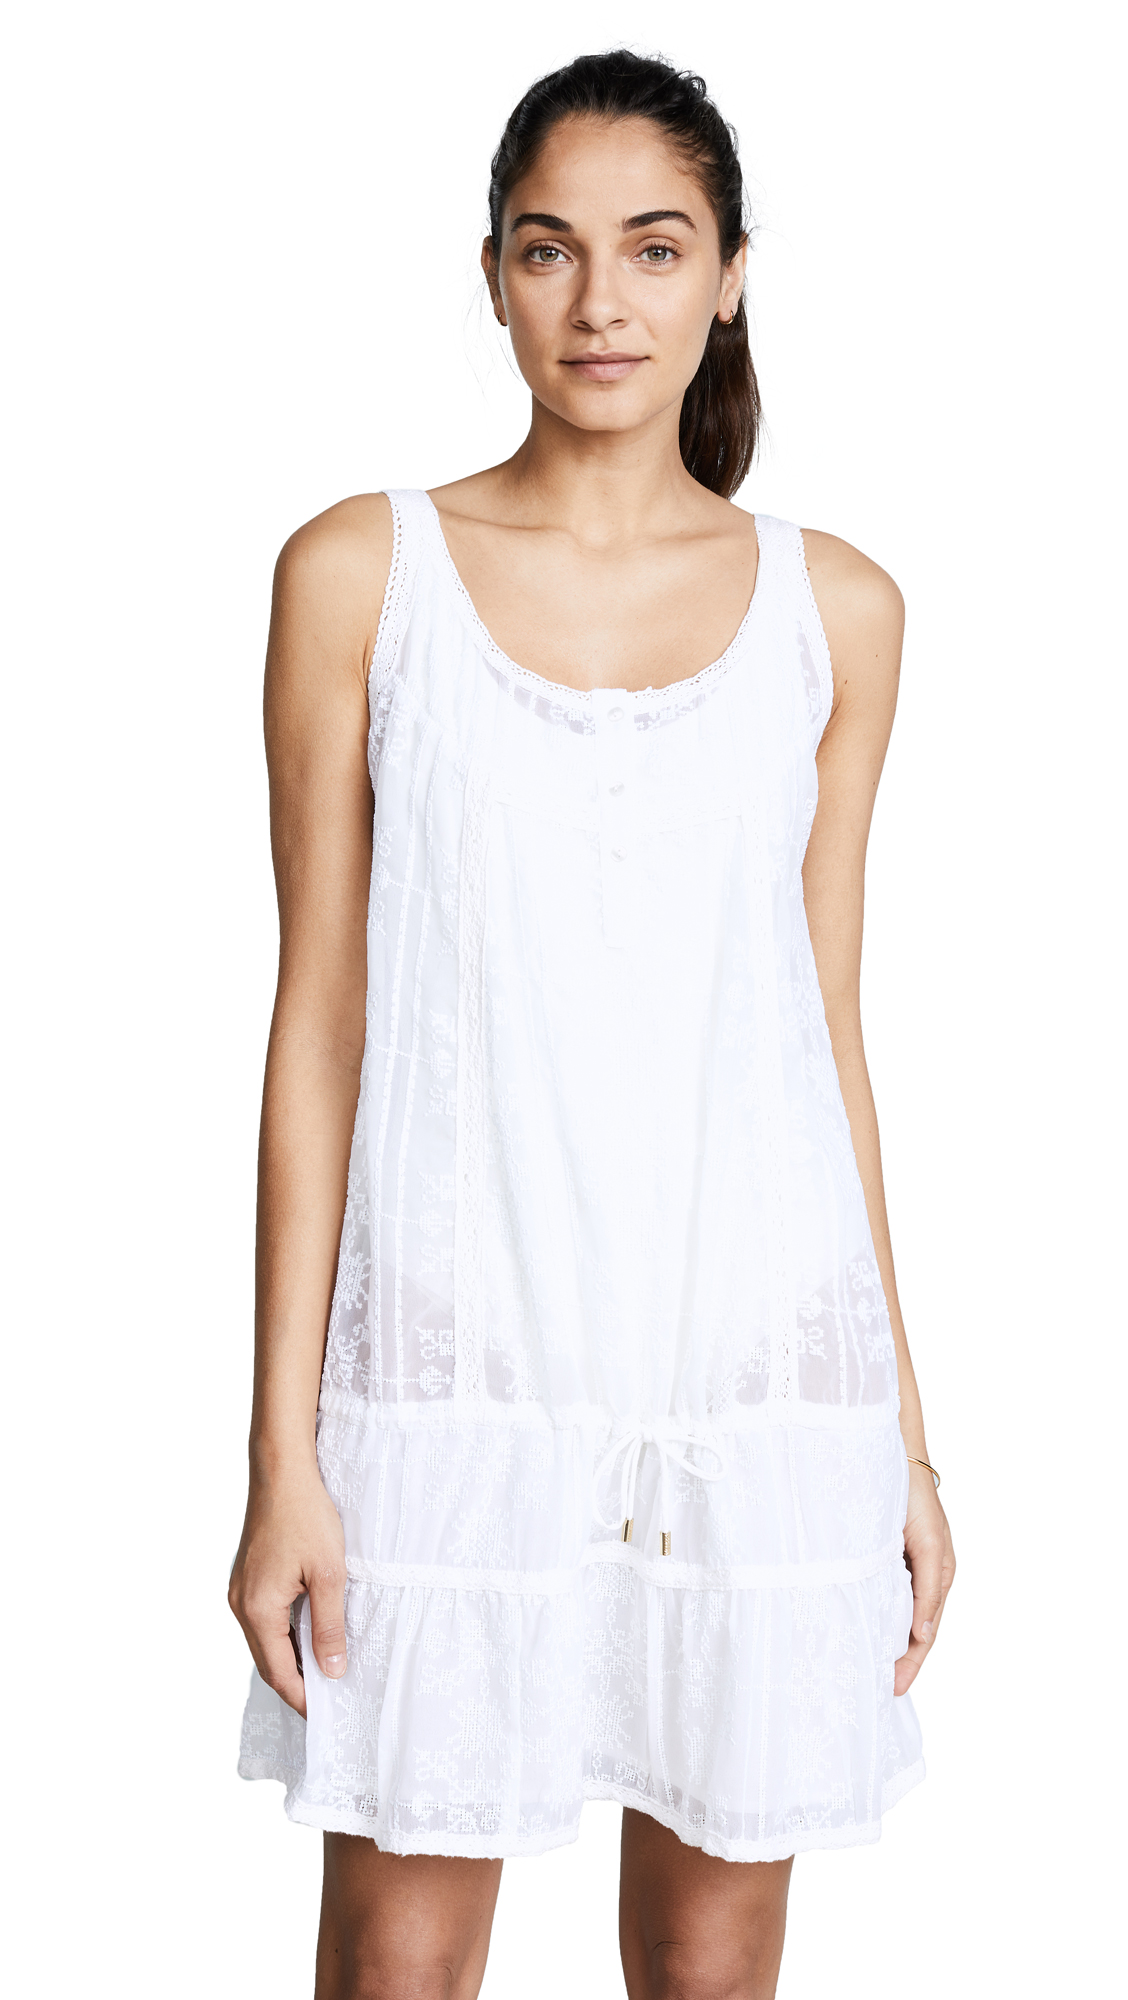 Melissa Odabash Jas Dress - White